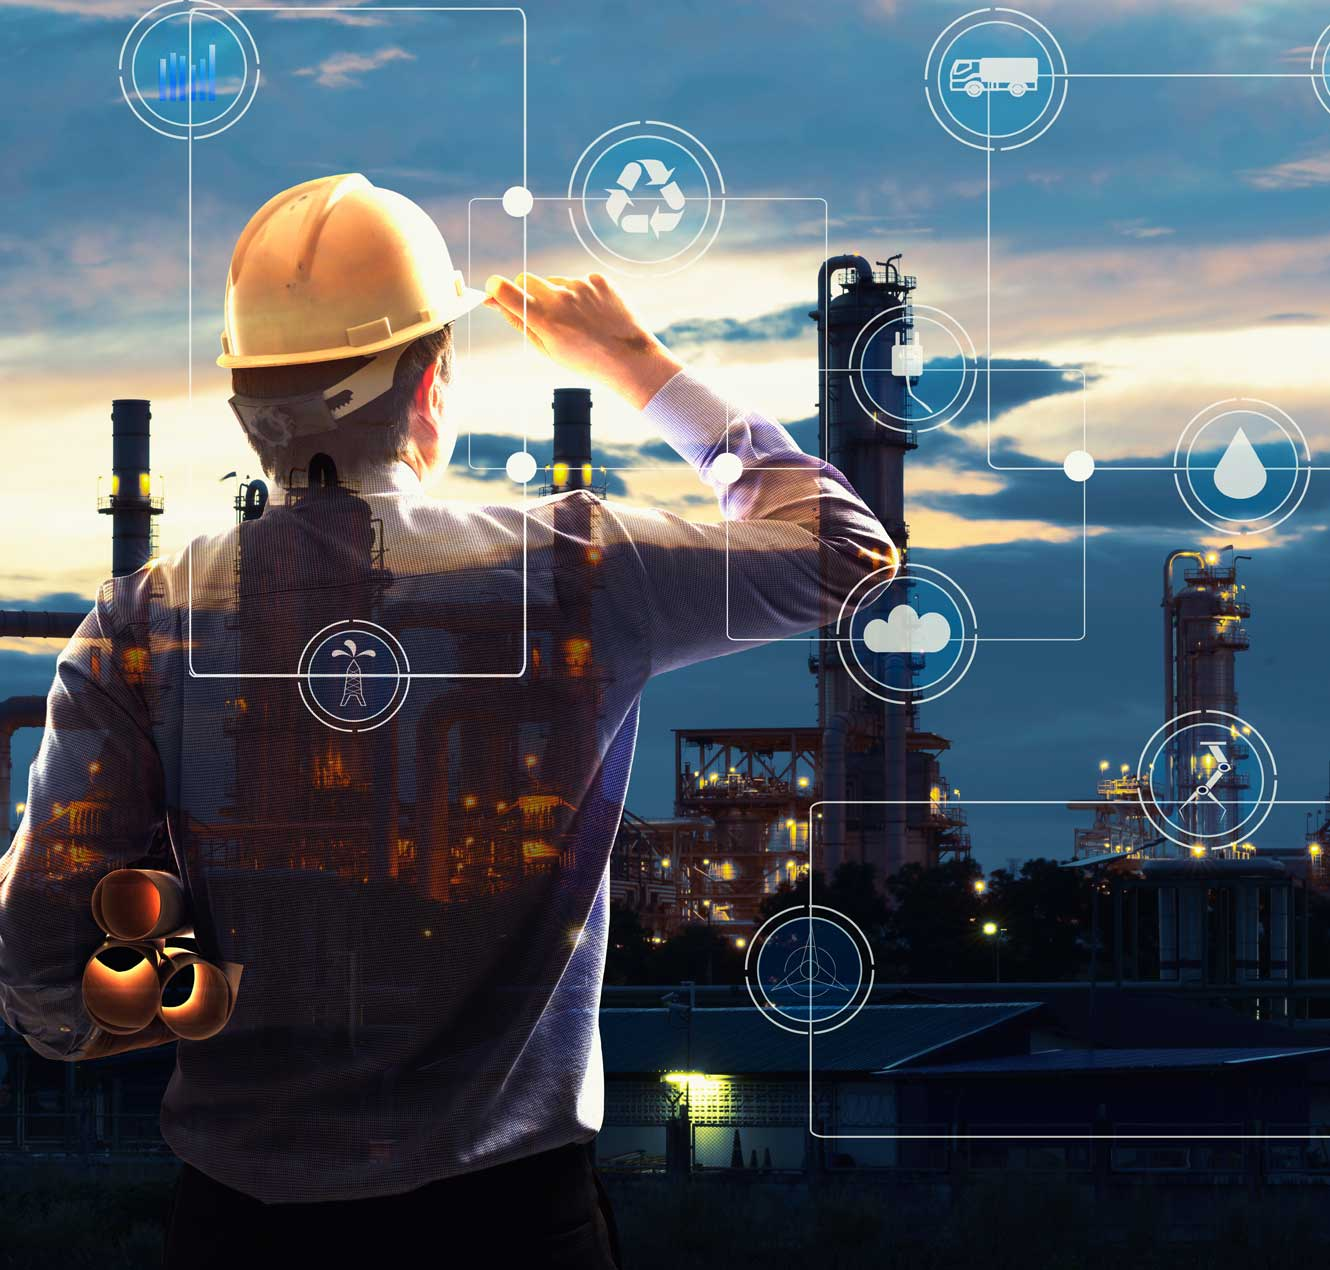 A corporate O&G executive exploring digital technologies to streamline operations.